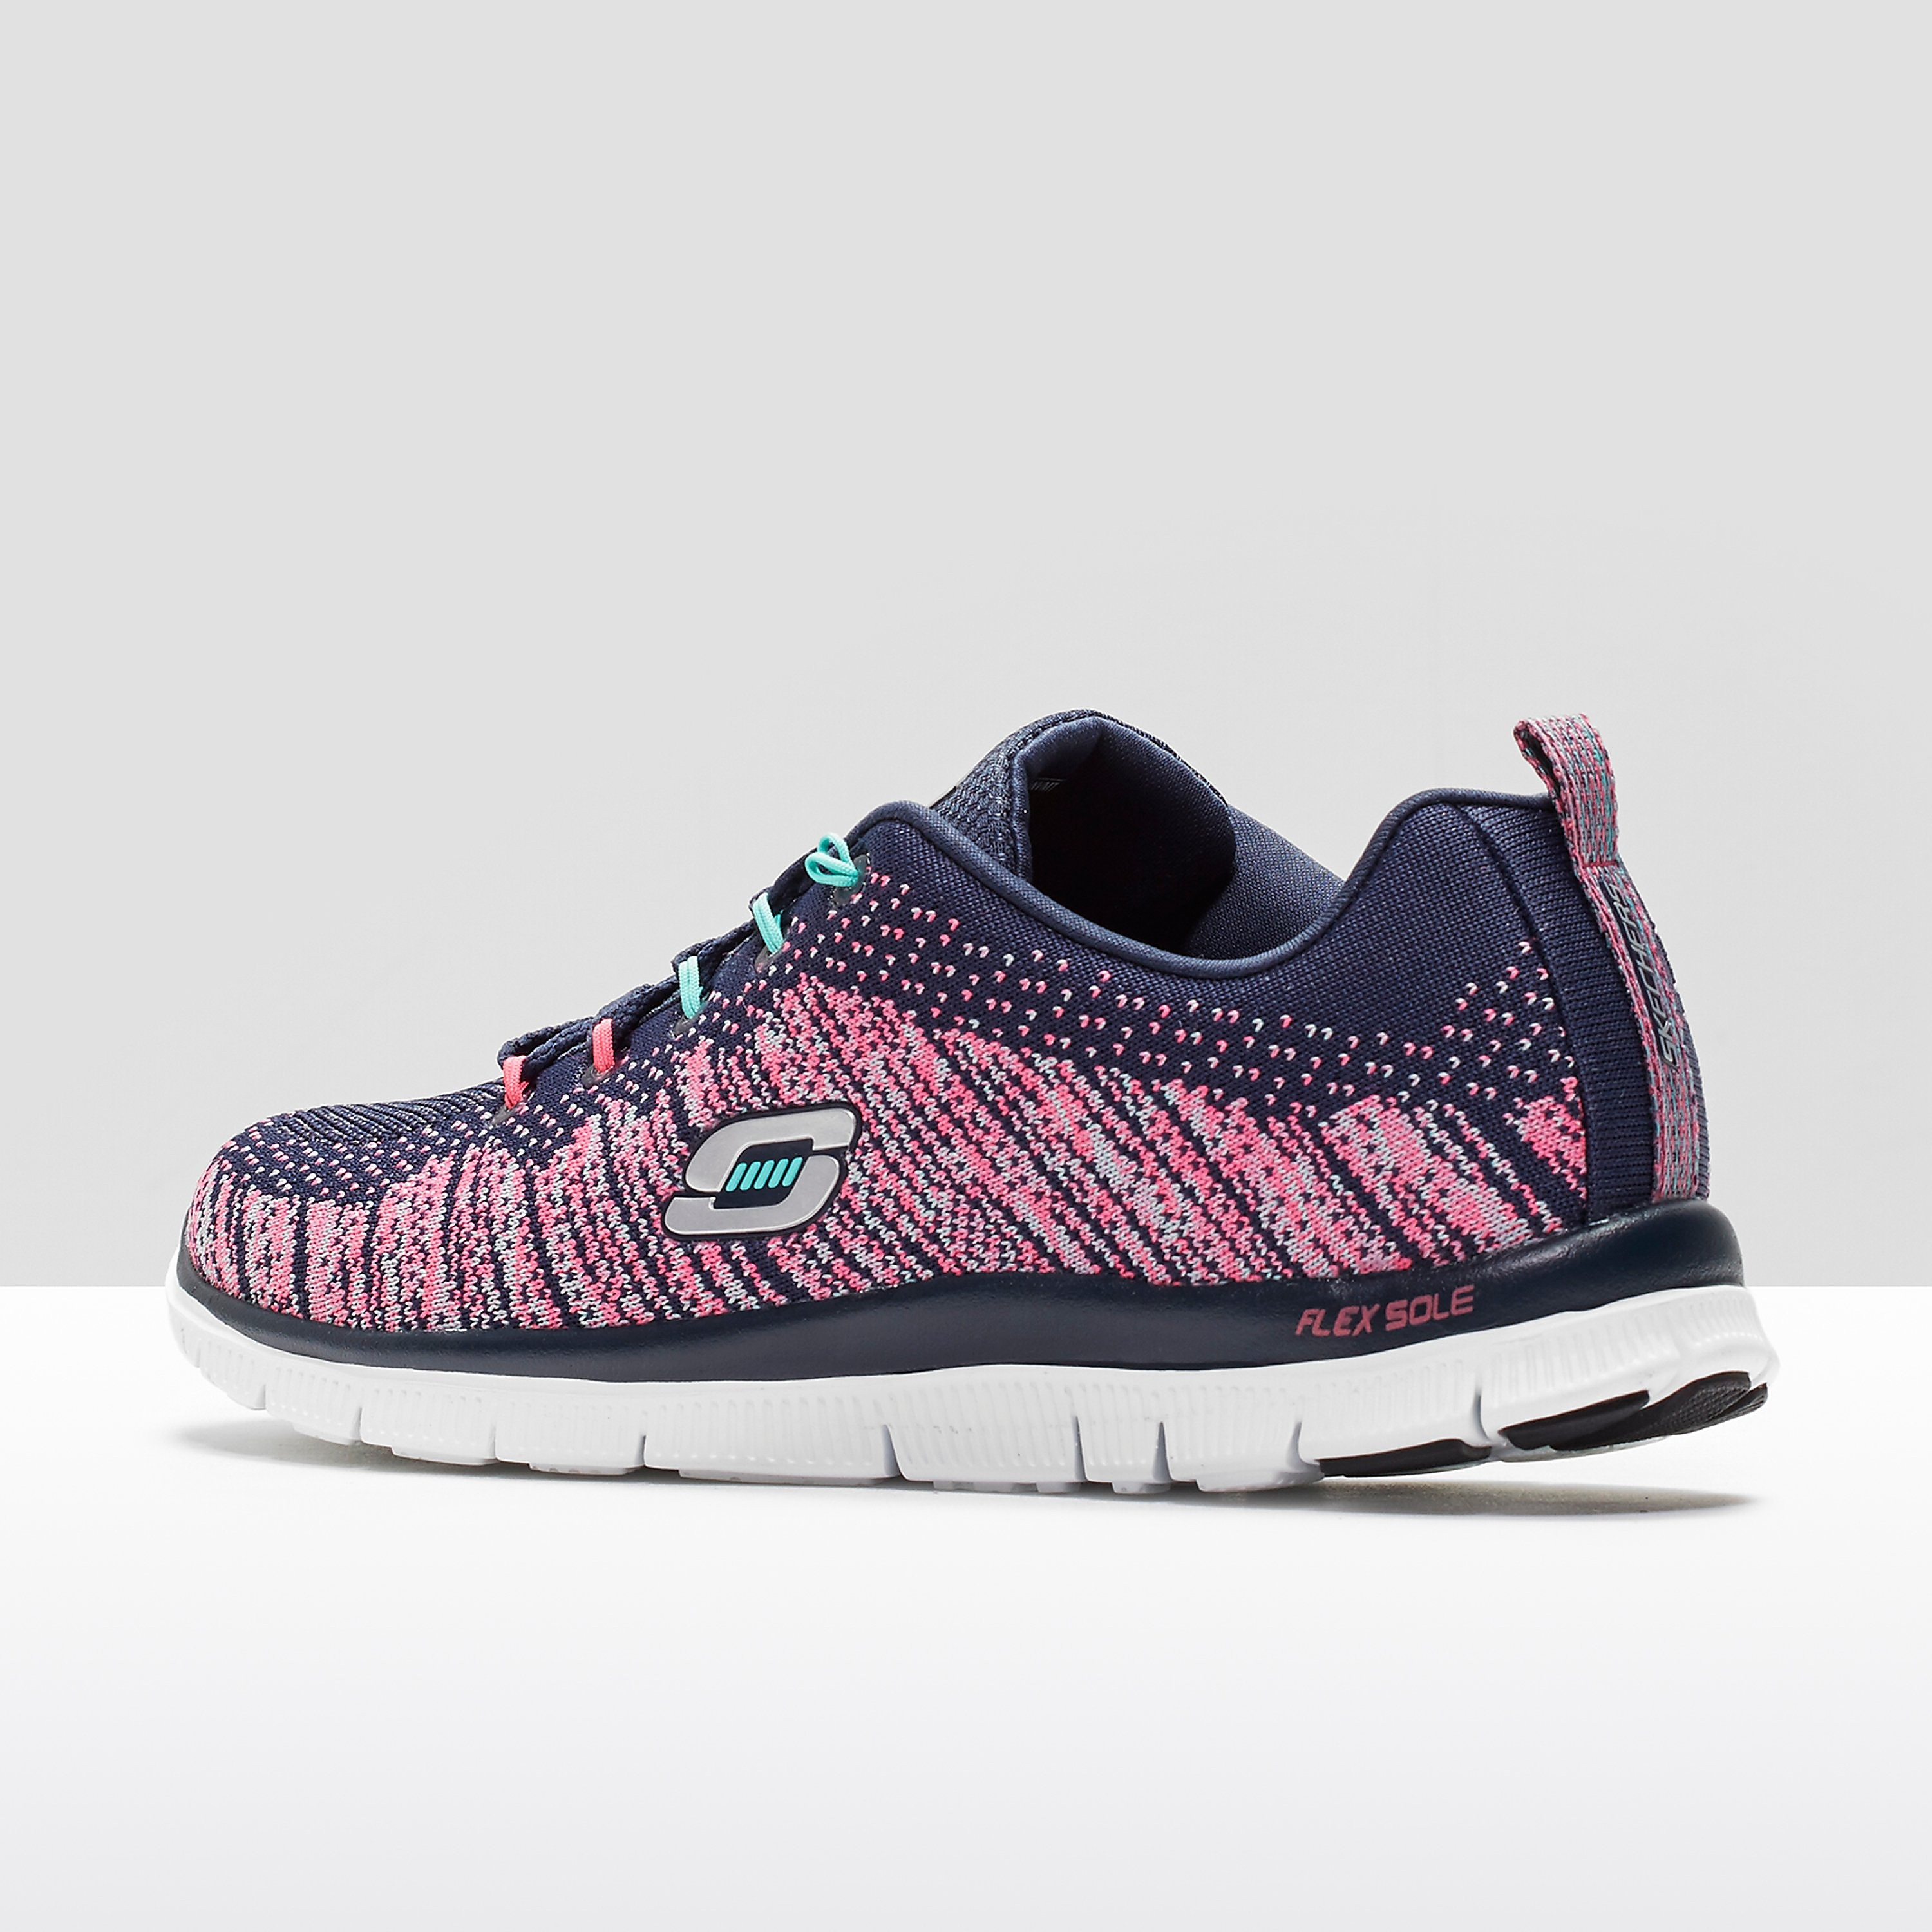 Skechers SKECHERS Flex Appeal - Obvious Choice